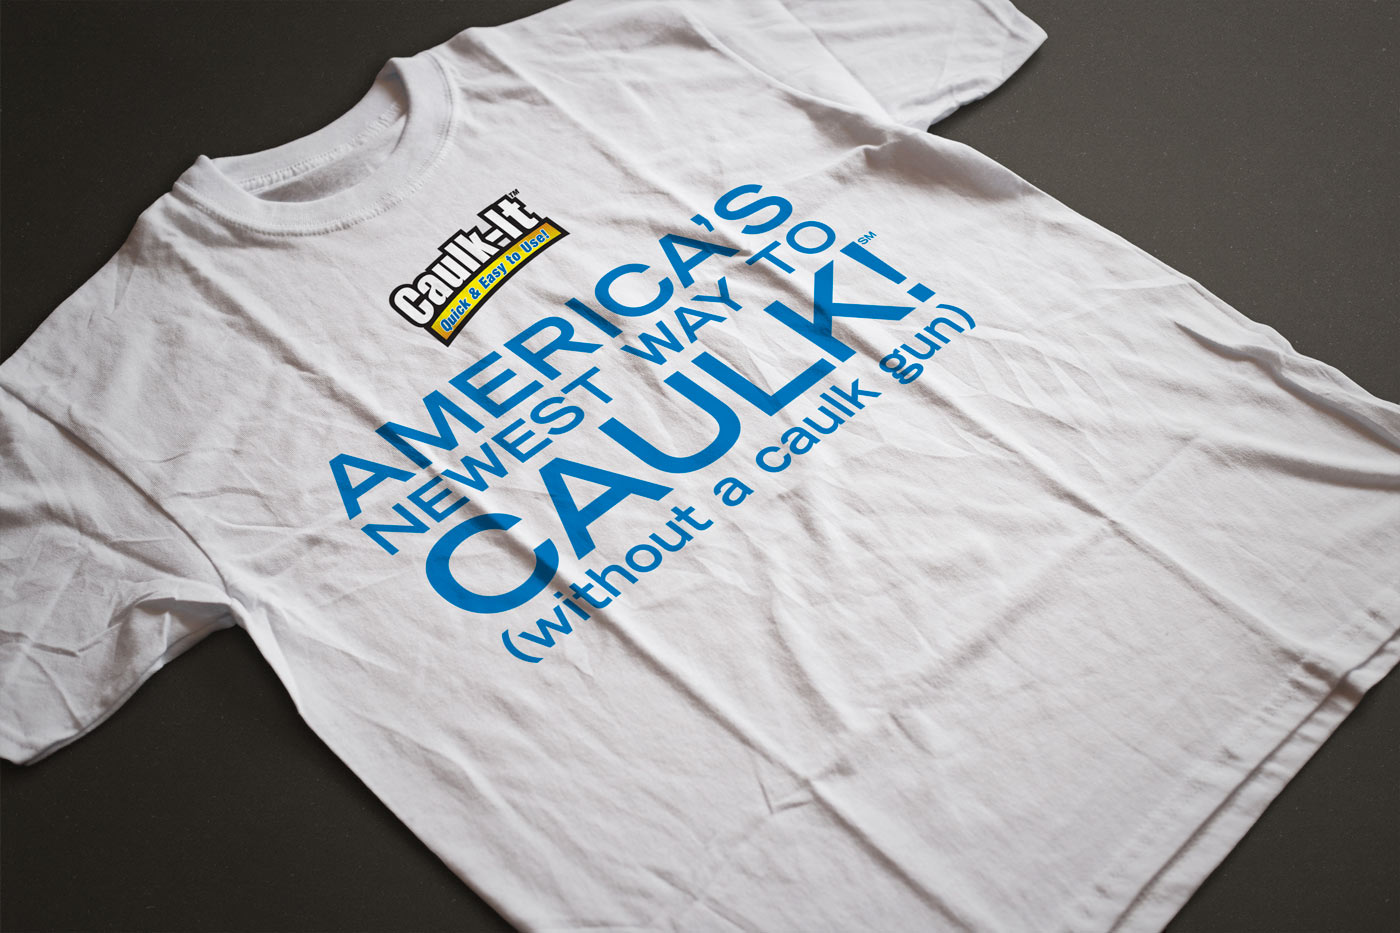 General Electric Caulk It T-Shirt Design